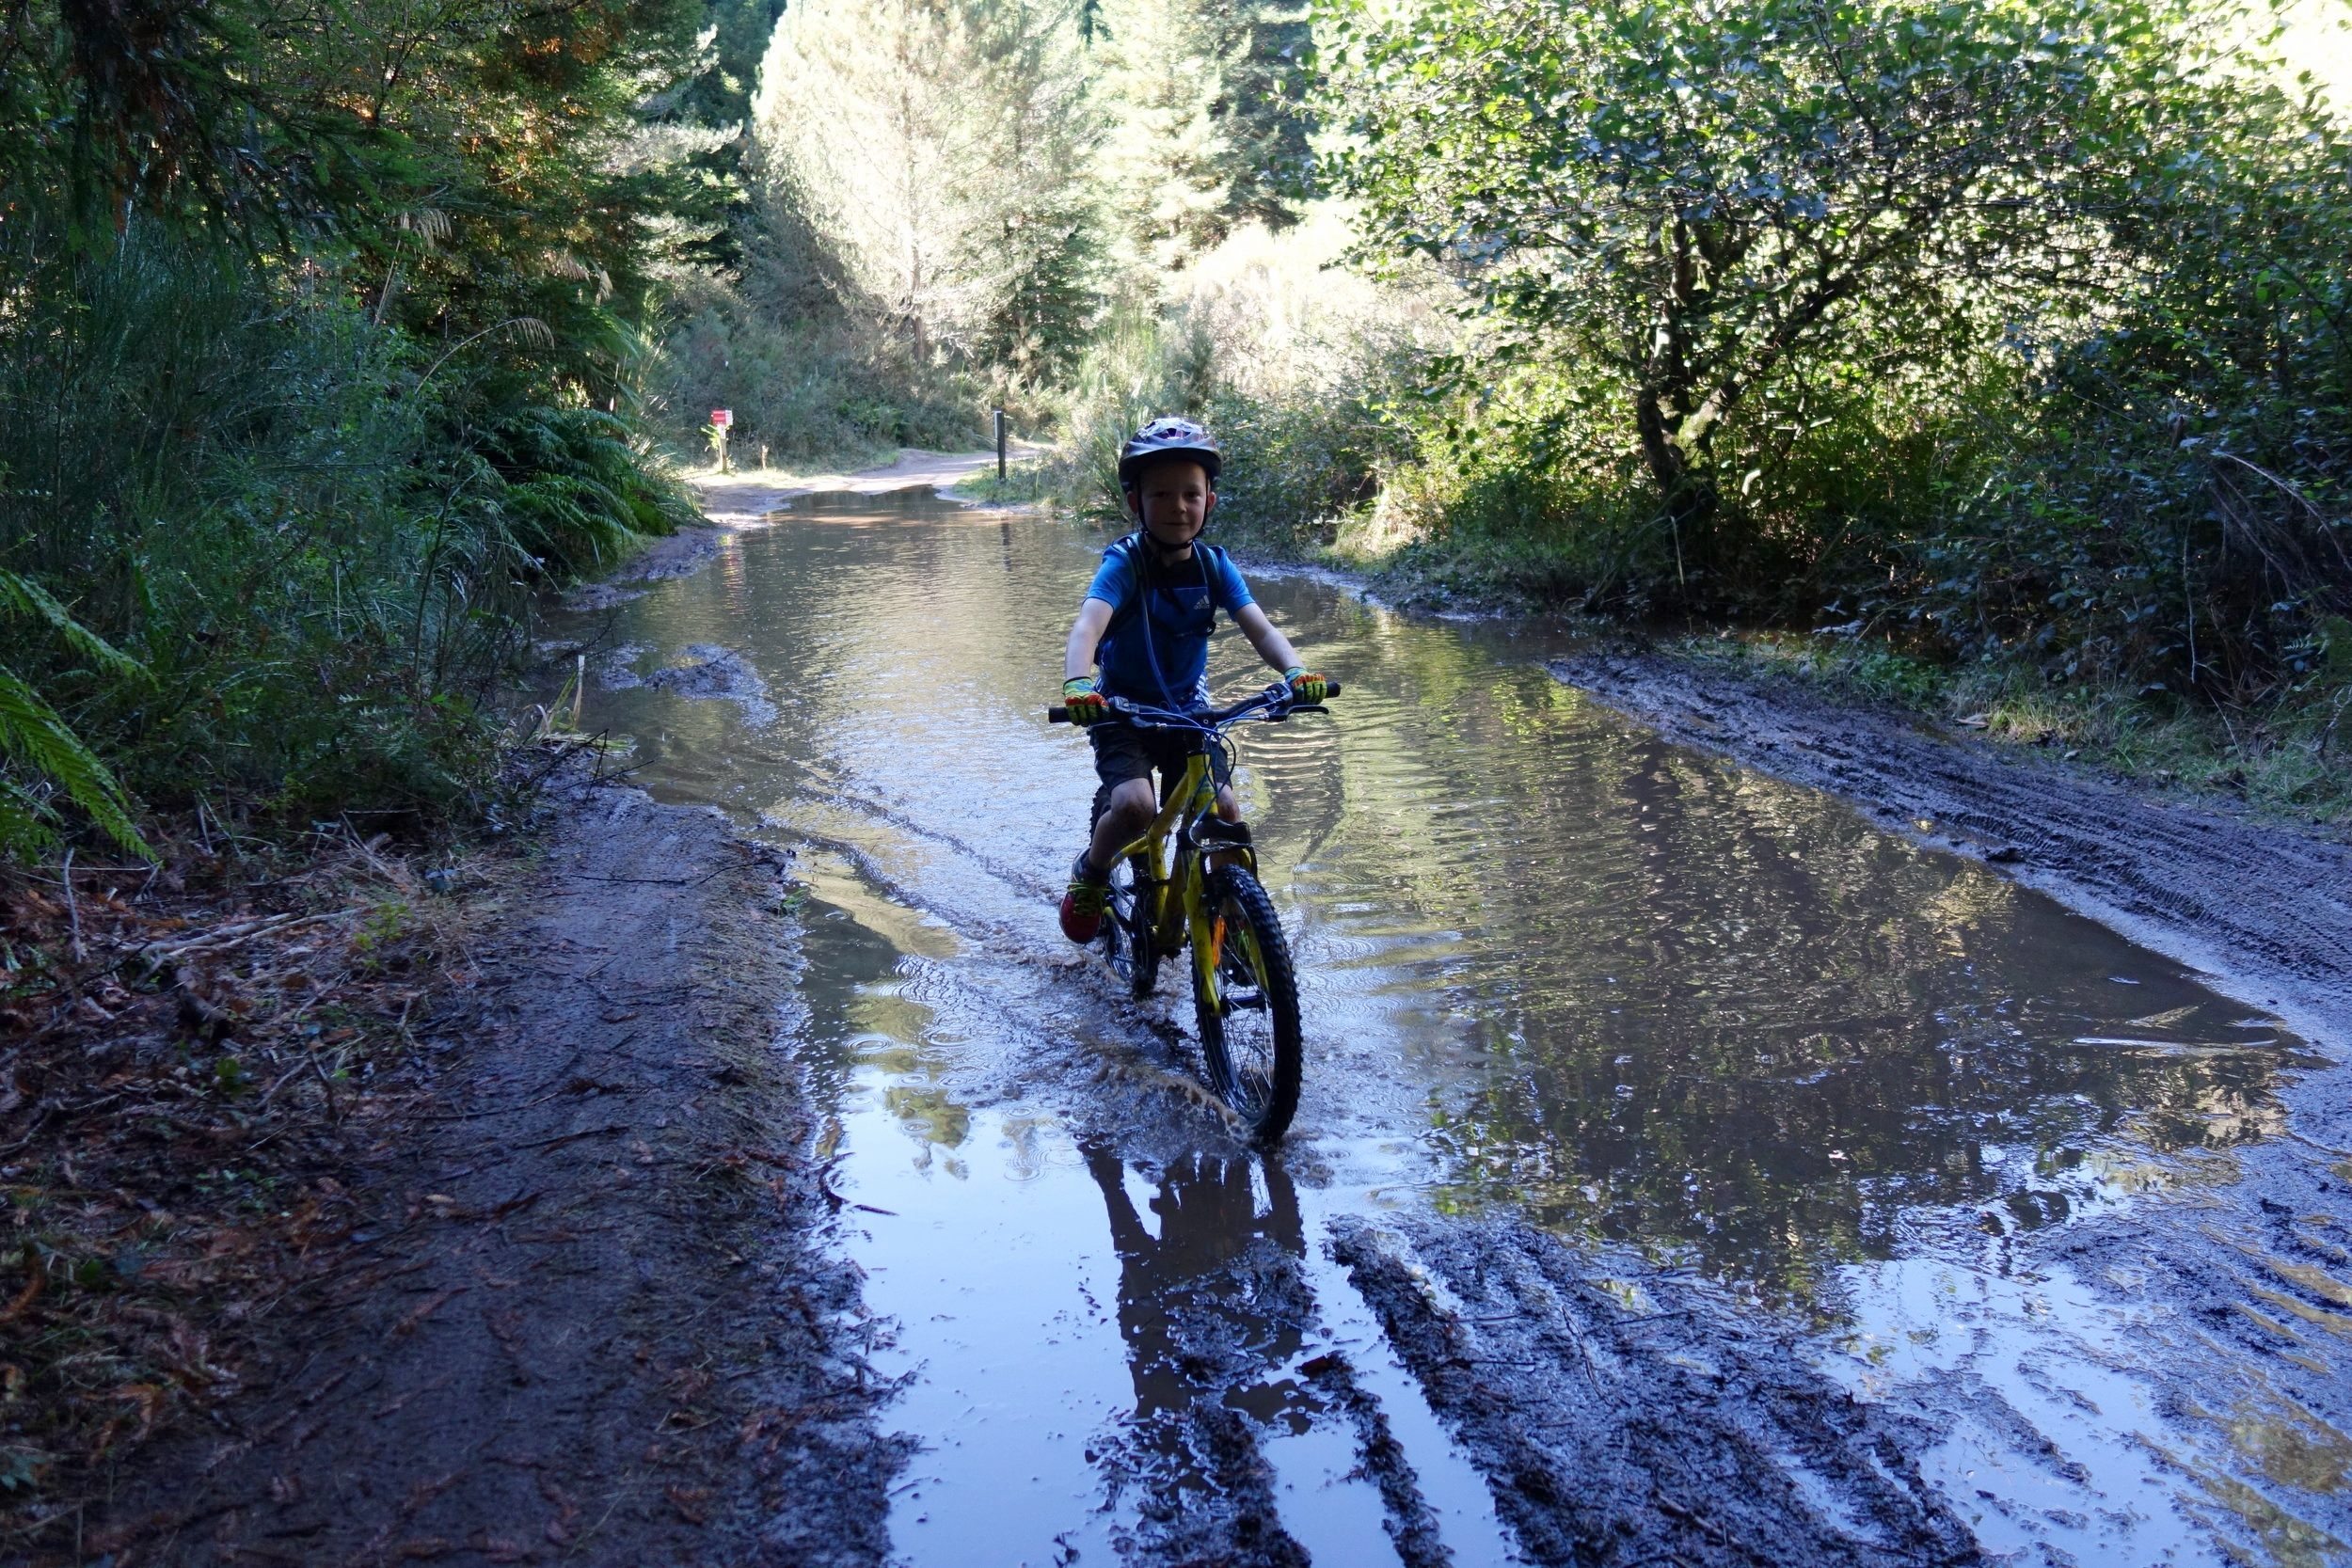 Were you aware that there had been a spot of rain over the last few days? This kid was doing multiple runs through this puddle while I was trying to daintily circumnavigate it. He was having way more fun than me.